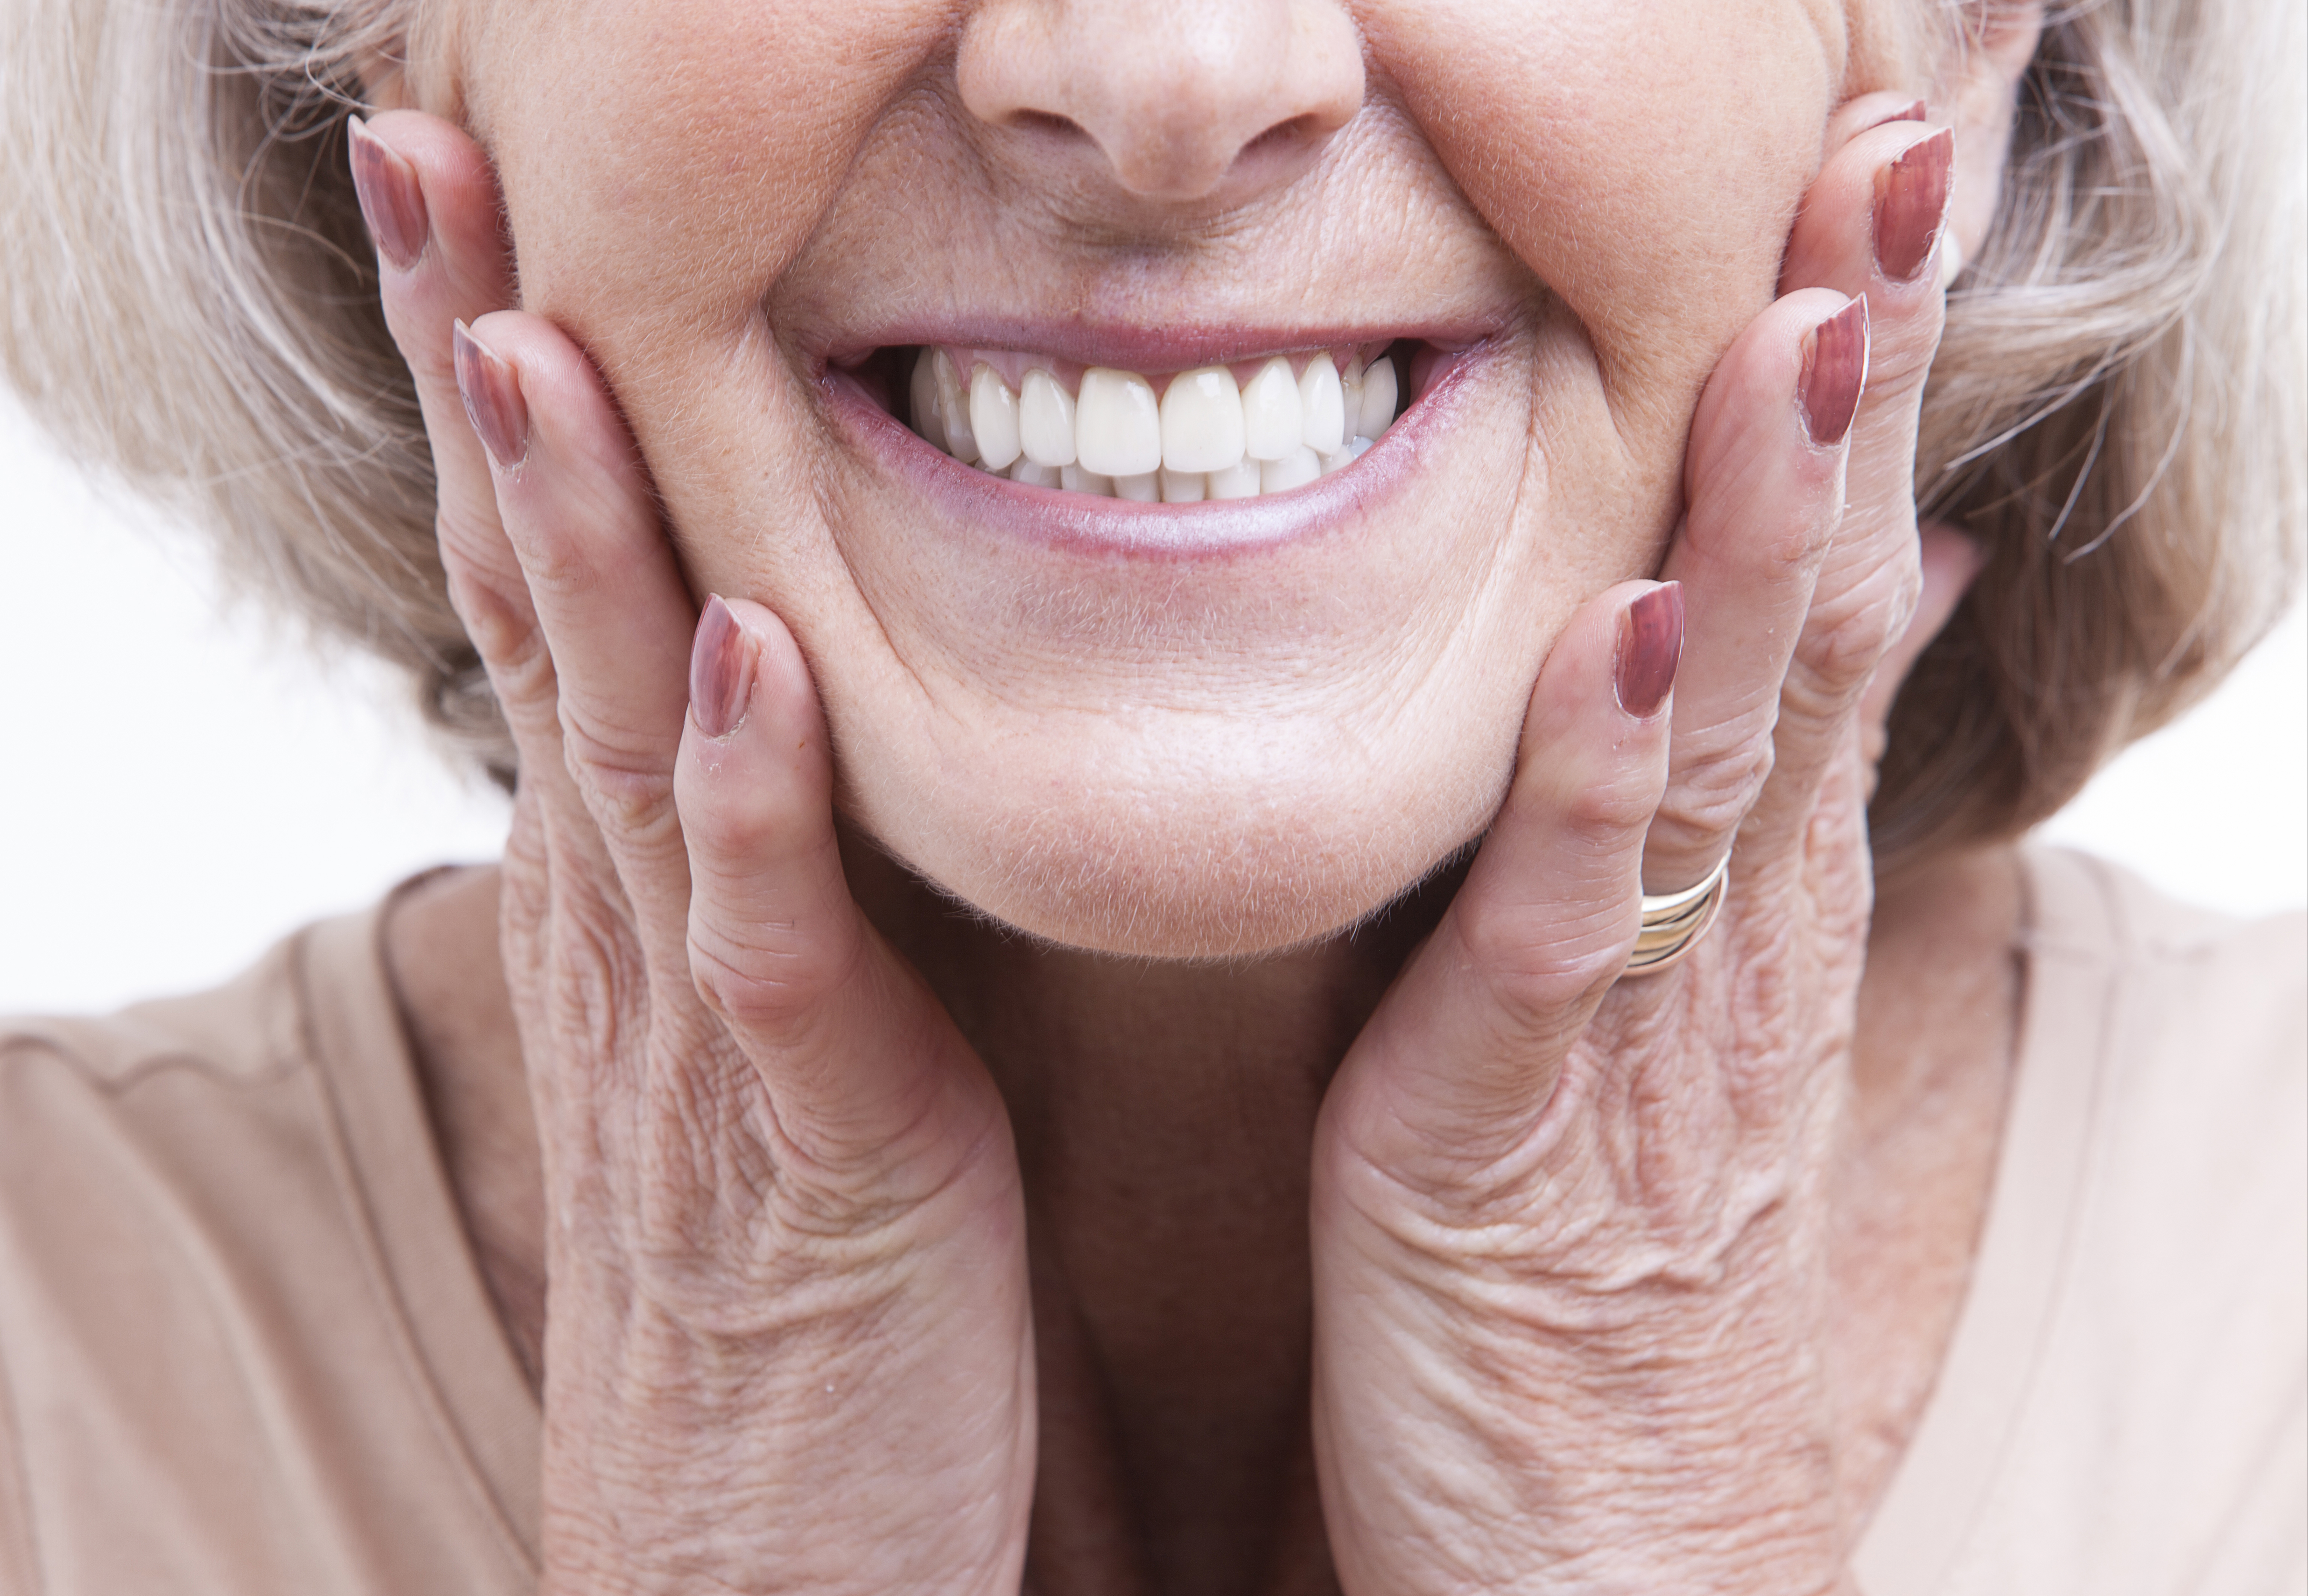 dentures egg harbor township nj | Pleasantville, nj